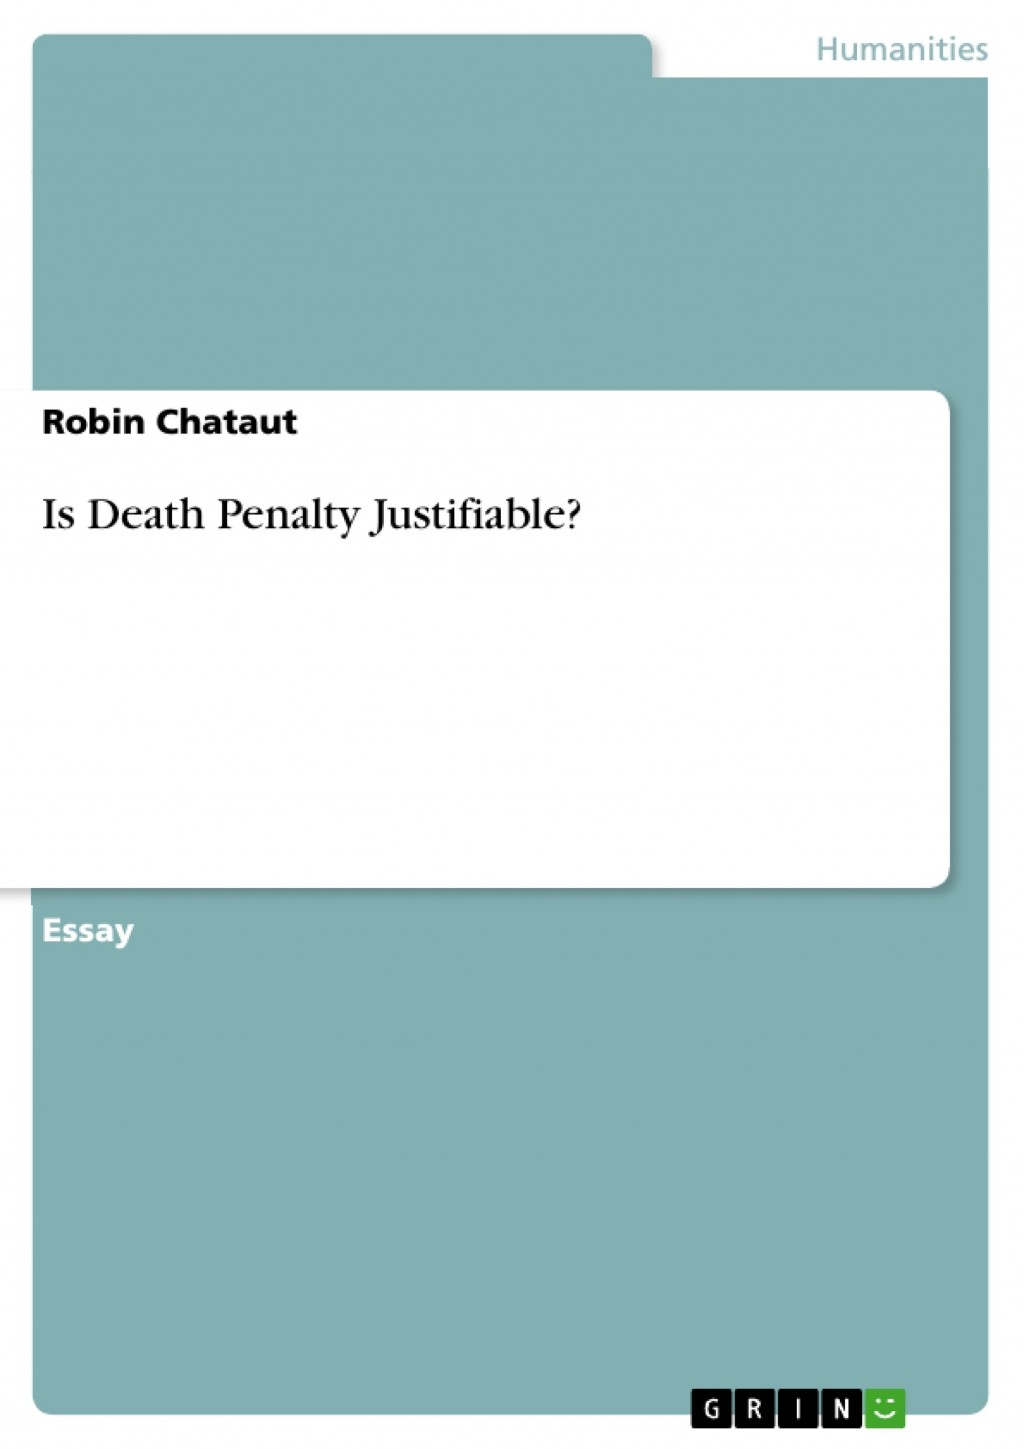 016 295417 0 Essay Example Against Death Unique Penalty Anti Tagalog Conclusion Examples Large